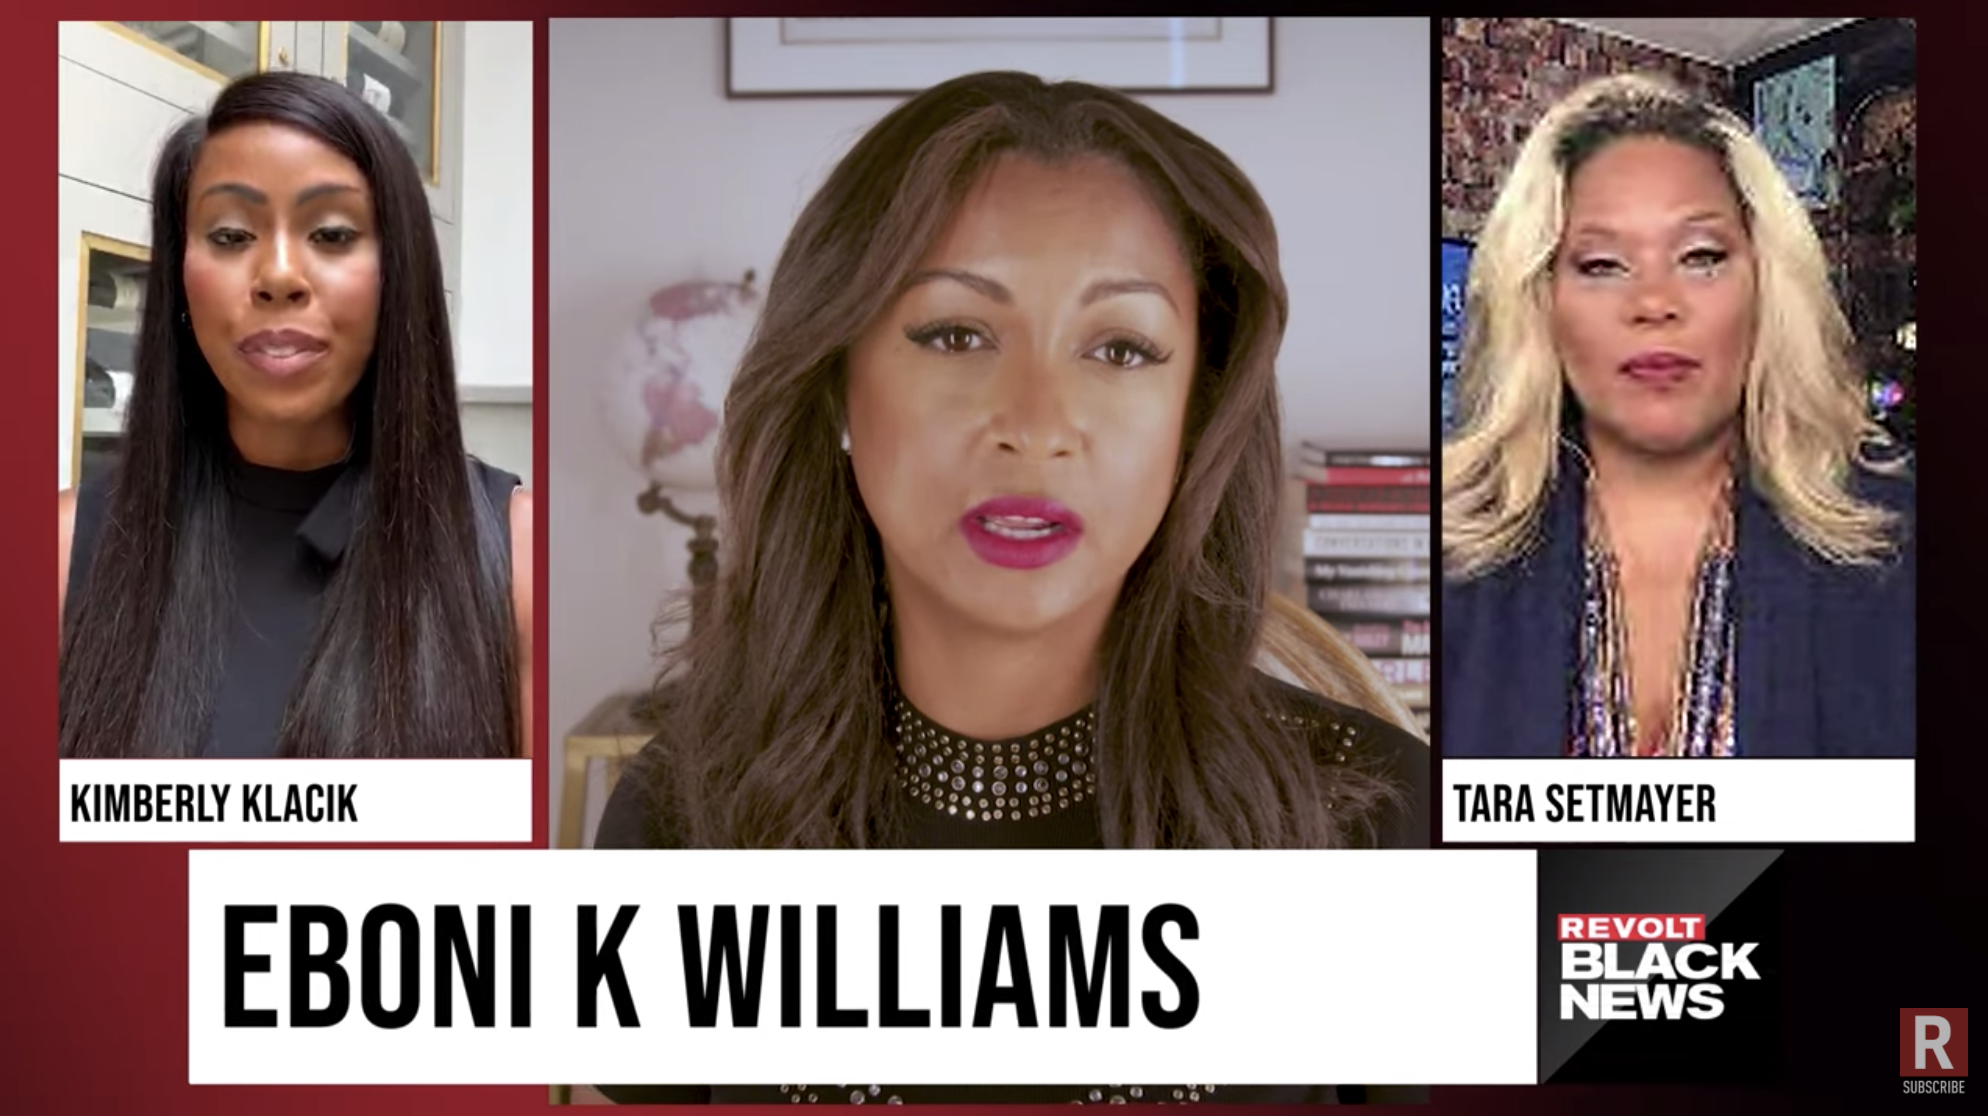 Republican candidate Kim Klacik joins Revolt Black News host Eboni K. Williams and conservative pundit Tara Setmayer for a discussion that delves into Black conservatism.